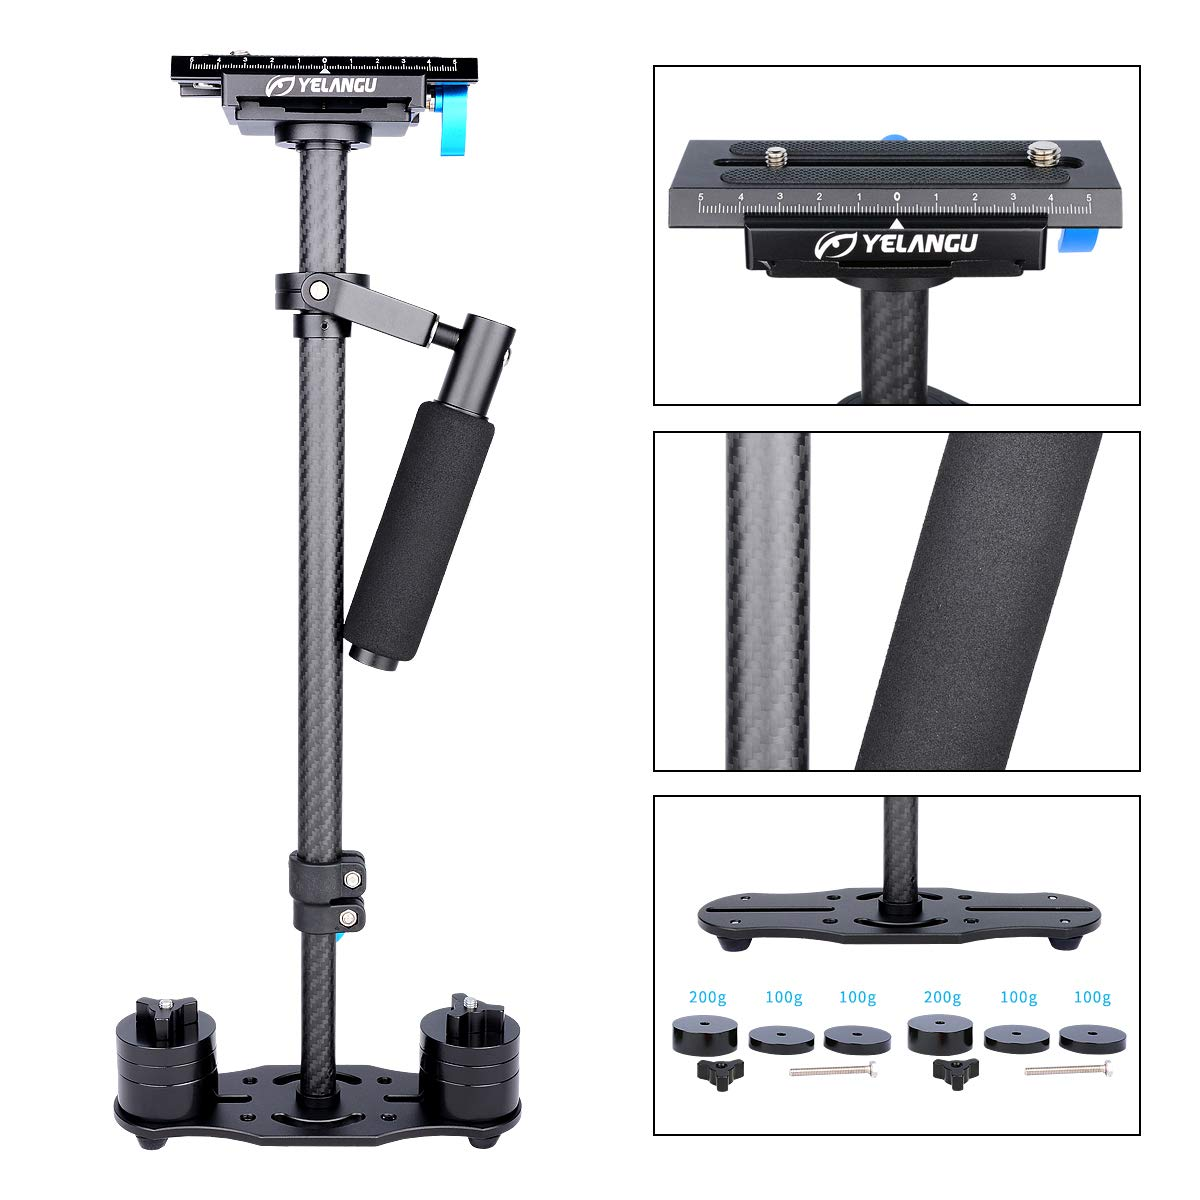 YELANGU Carbon Fiber 24''/60cm Handheld Stabilizer with 1/4'' and 3/8'' Screw for DSLR and Video Cameras up to 6.6lbs/3kg(Black) by YELANGU